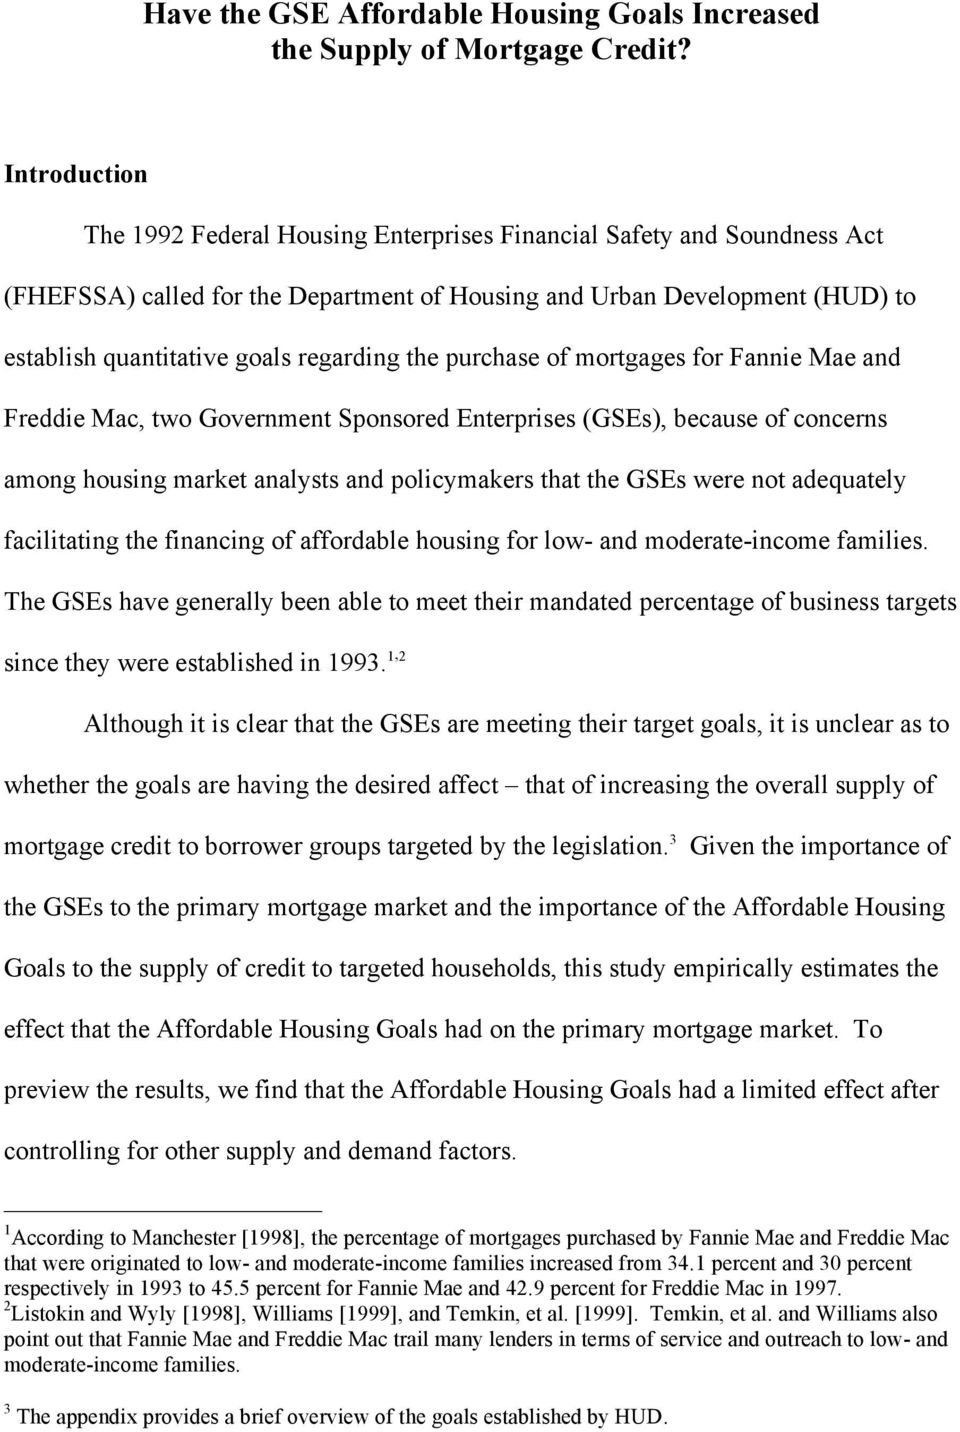 regarding the purchase of mortgages for Fannie Mae and Freddie Mac, two Government Sponsored Enterprises (GSEs), because of concerns among housing market analysts and policymakers that the GSEs were